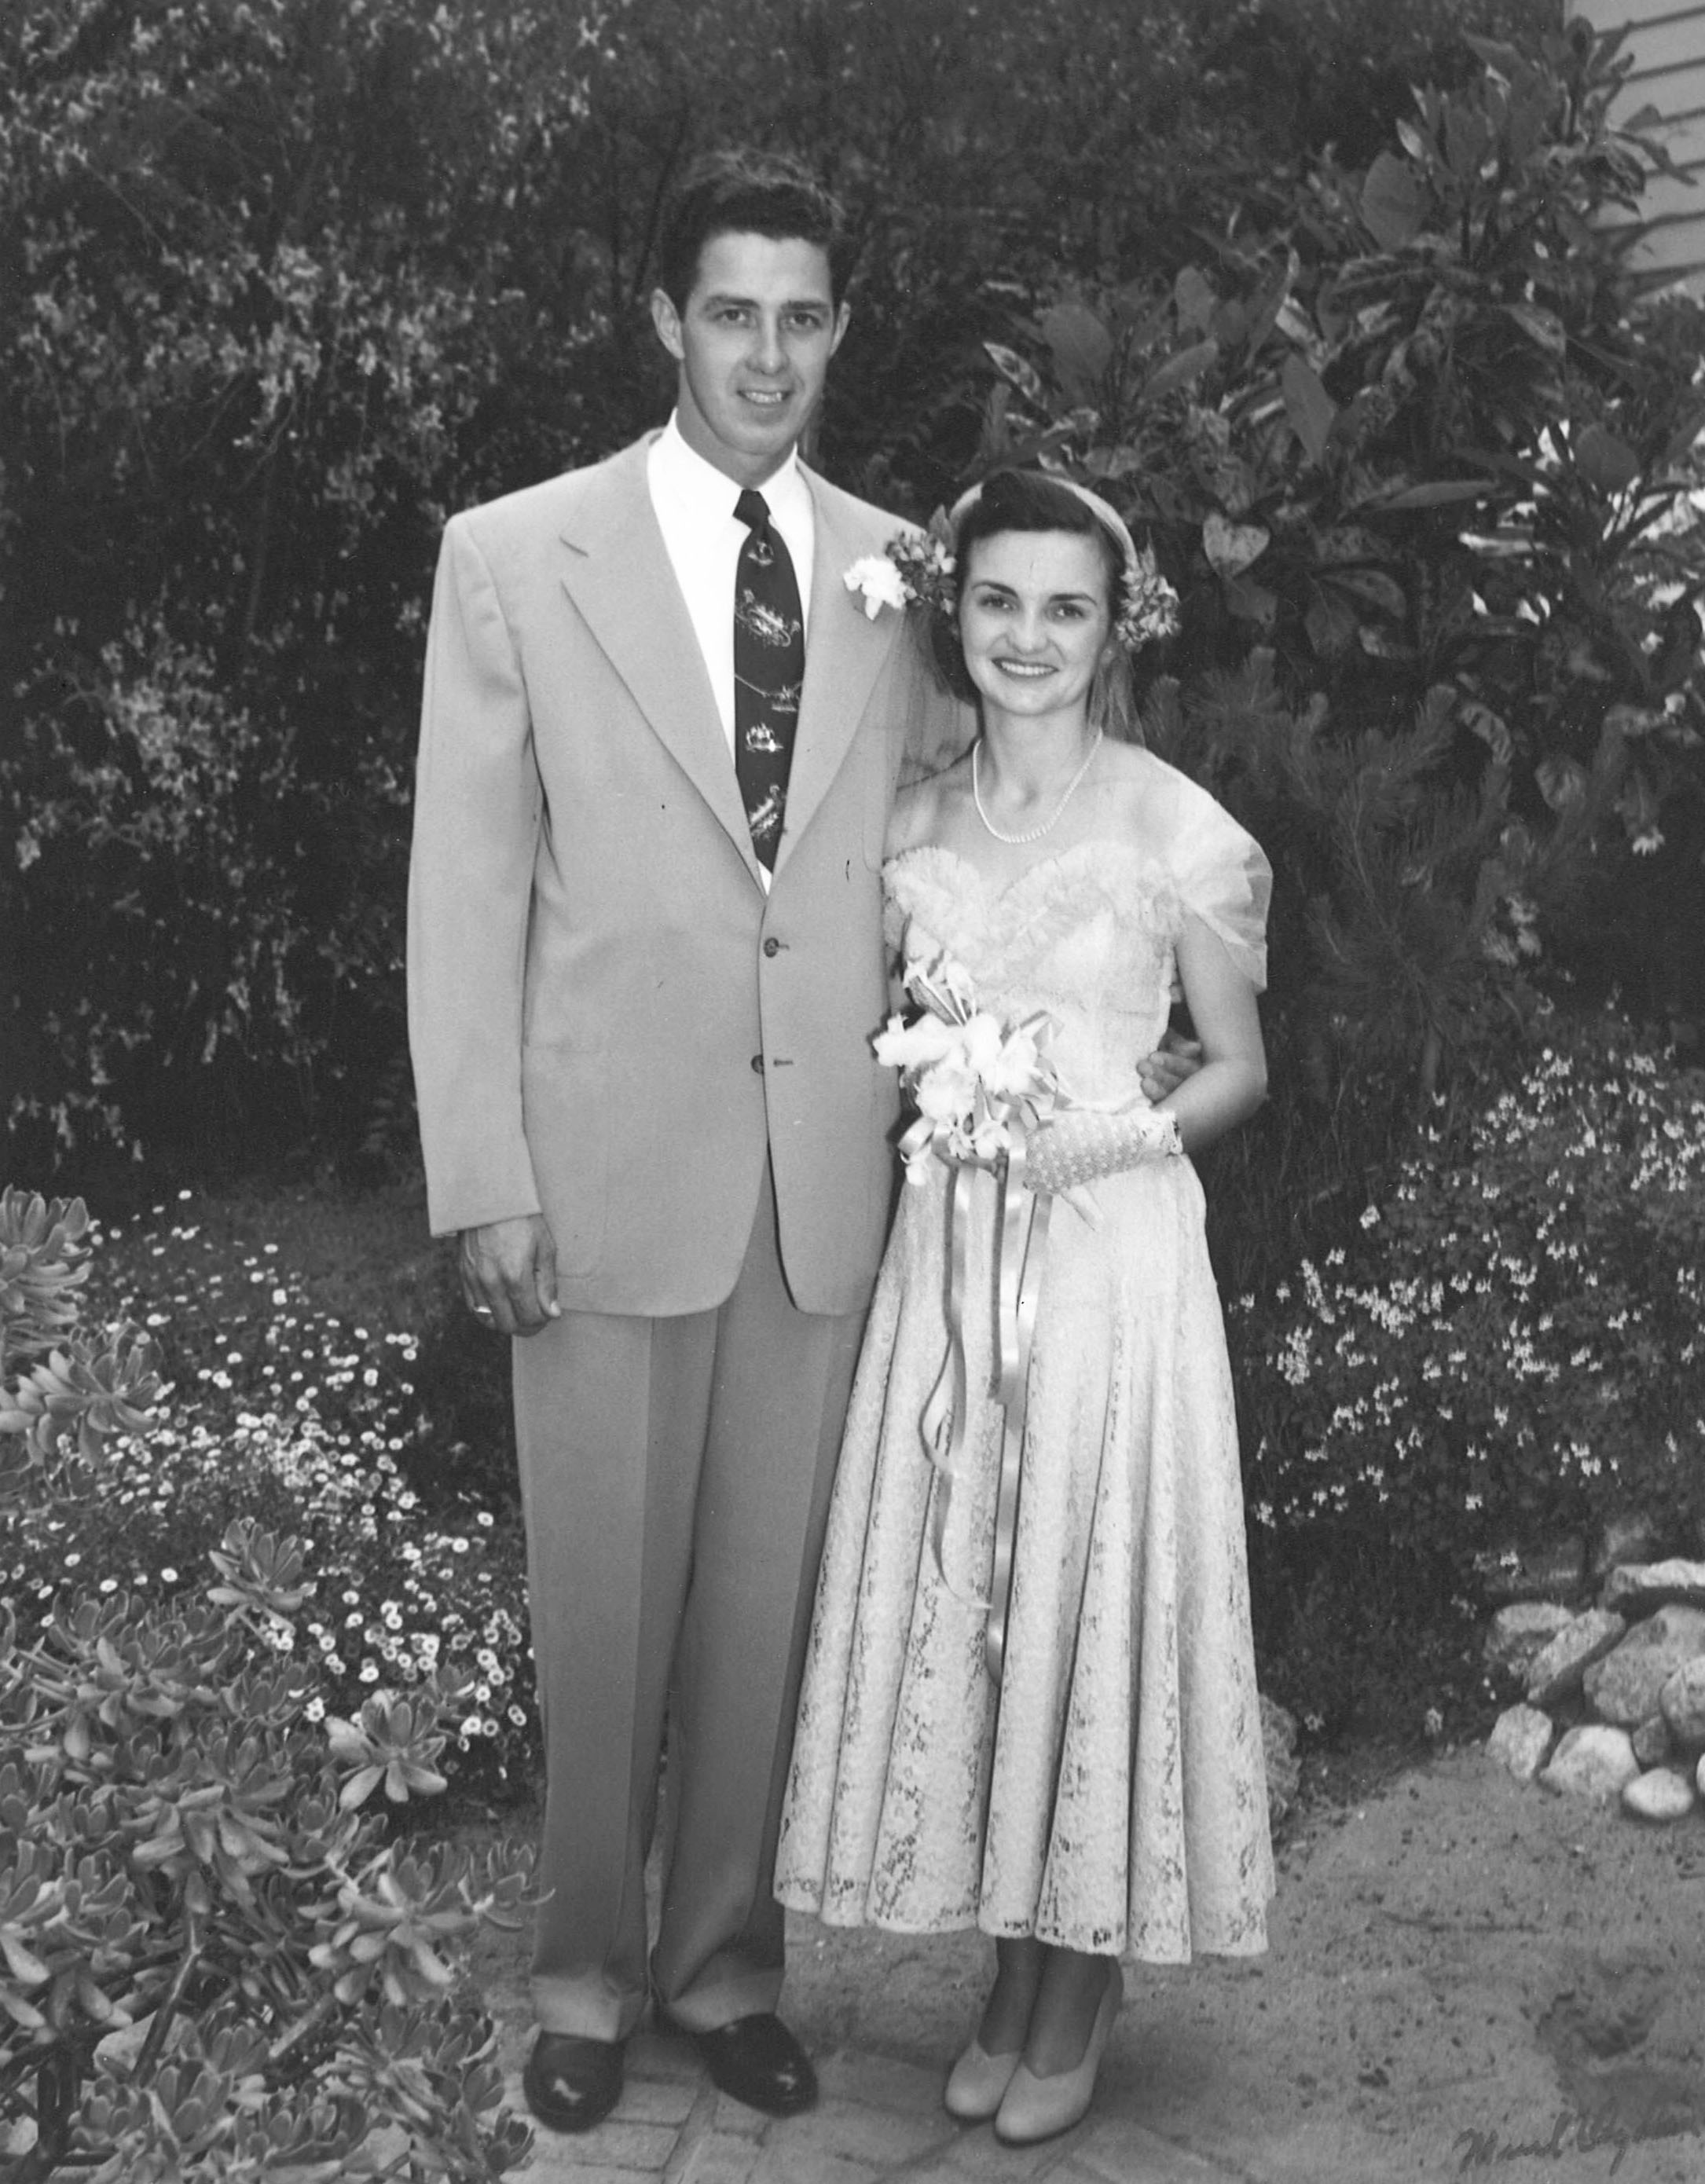 Wedding in Carmel, California, 4 June 1951. Image courtesy of Madeline Smith to Clipper Crew.